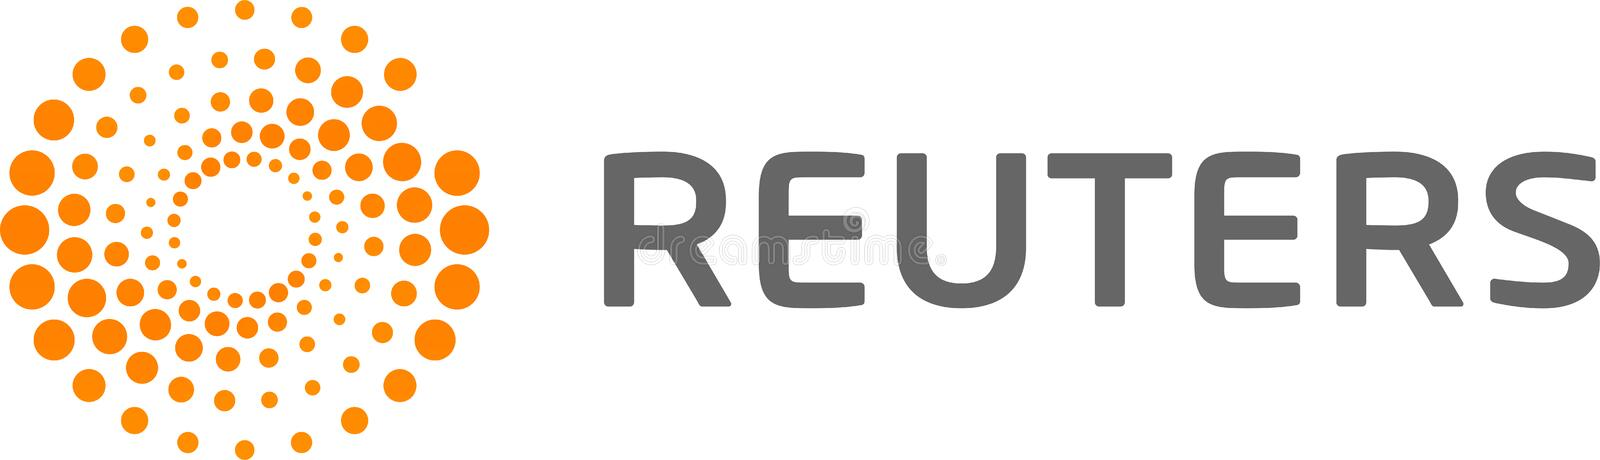 Reuters logo news. Reuters is an international news organization. It is a division of Thomson Reuters and has nearly 200 locations around the world. Until 2008